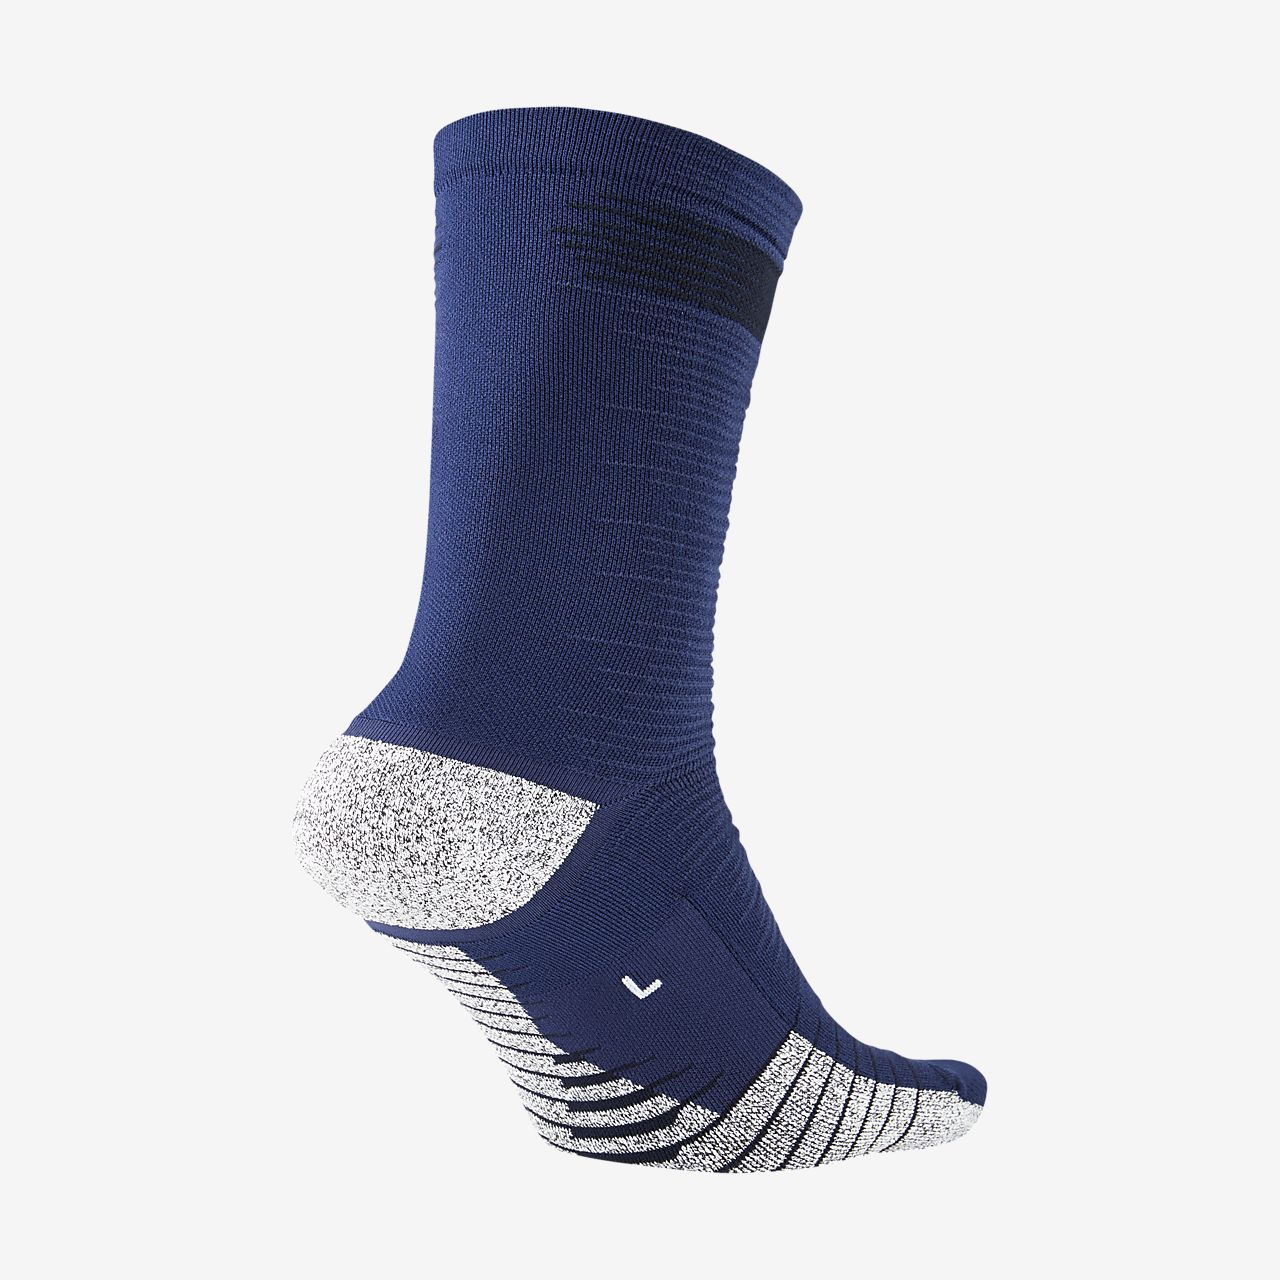 d1d1e5727 NikeGrip Strike Light Crew Football Socks. Nike.com NO